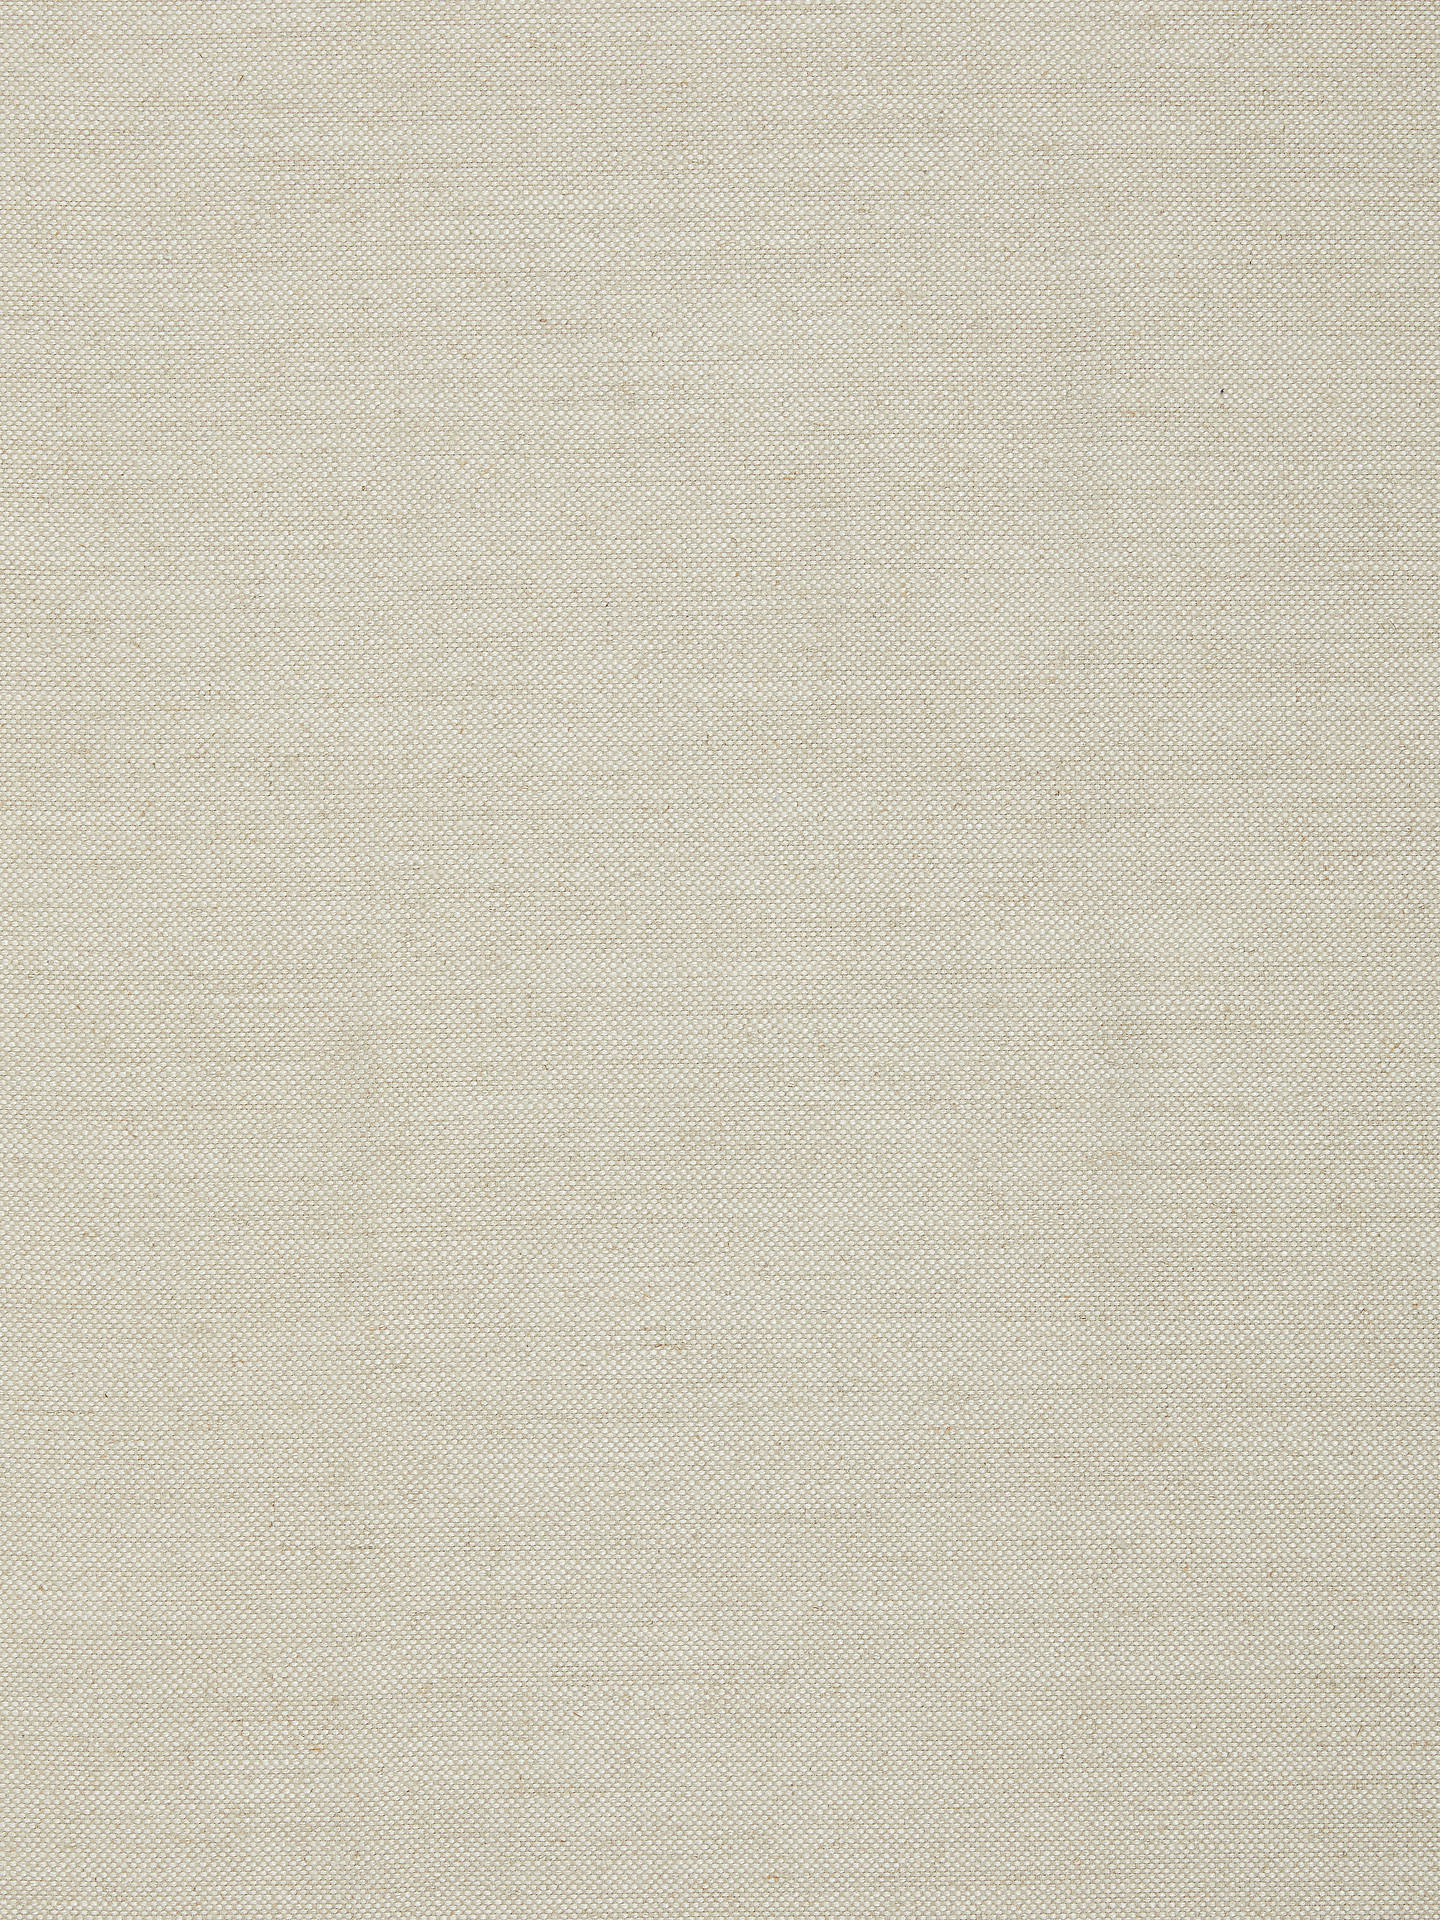 Buy John Lewis & Partners Viscose Linen Blend Furnishing Fabric, Putty Online at johnlewis.com